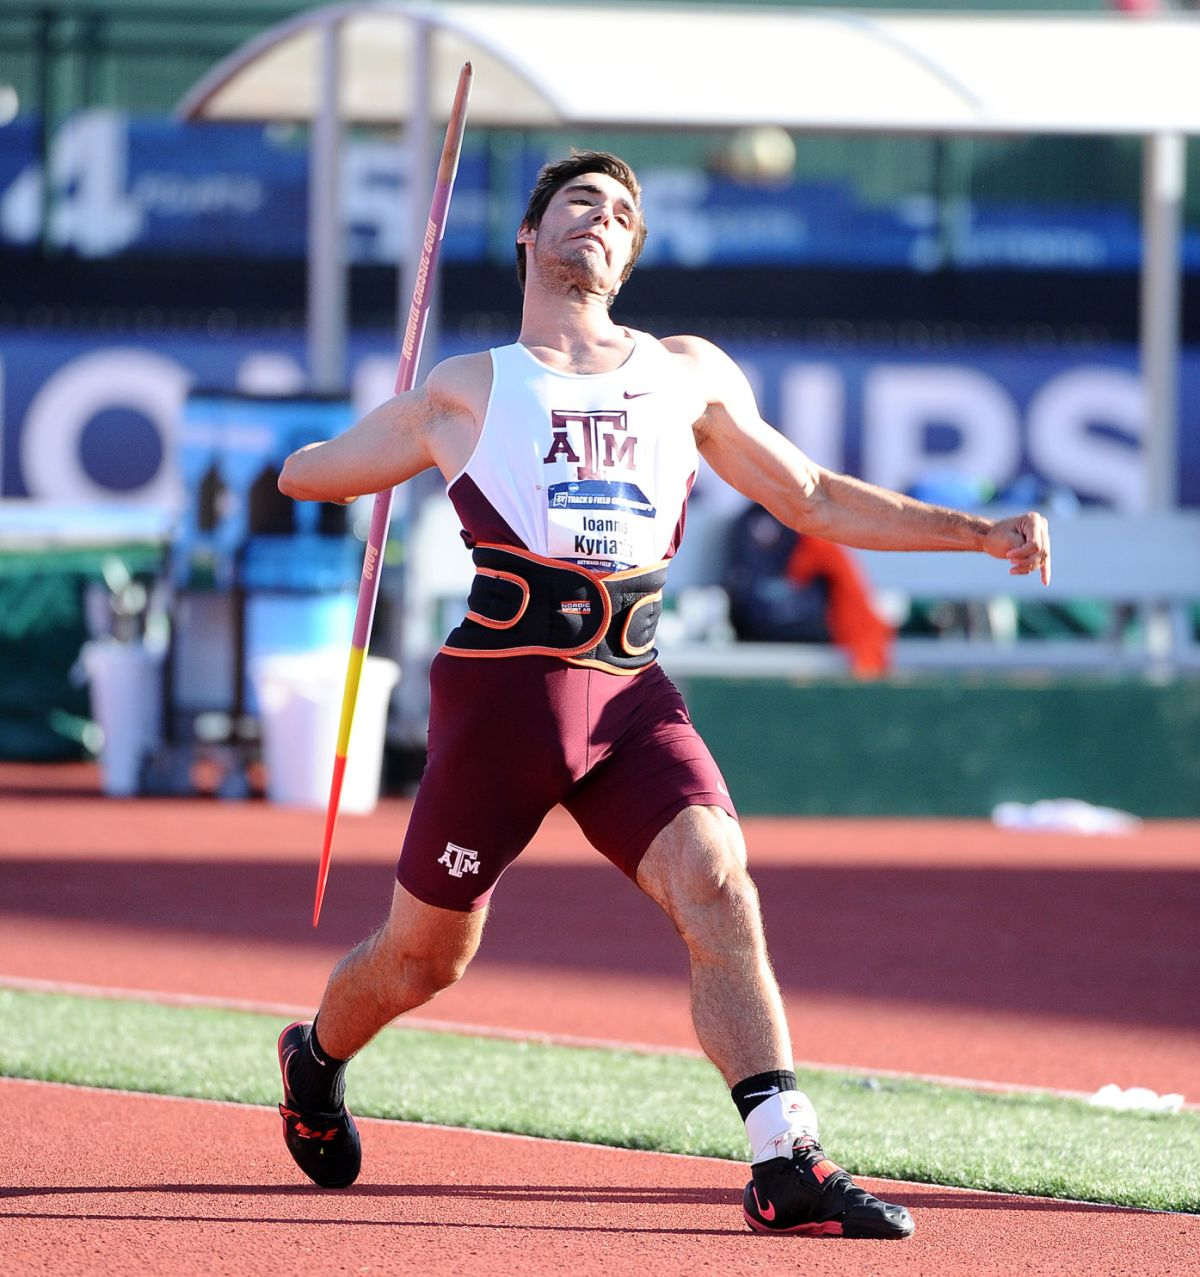 A Conversation With A Amp M Javelin Thrower Ioannis Kyriazis